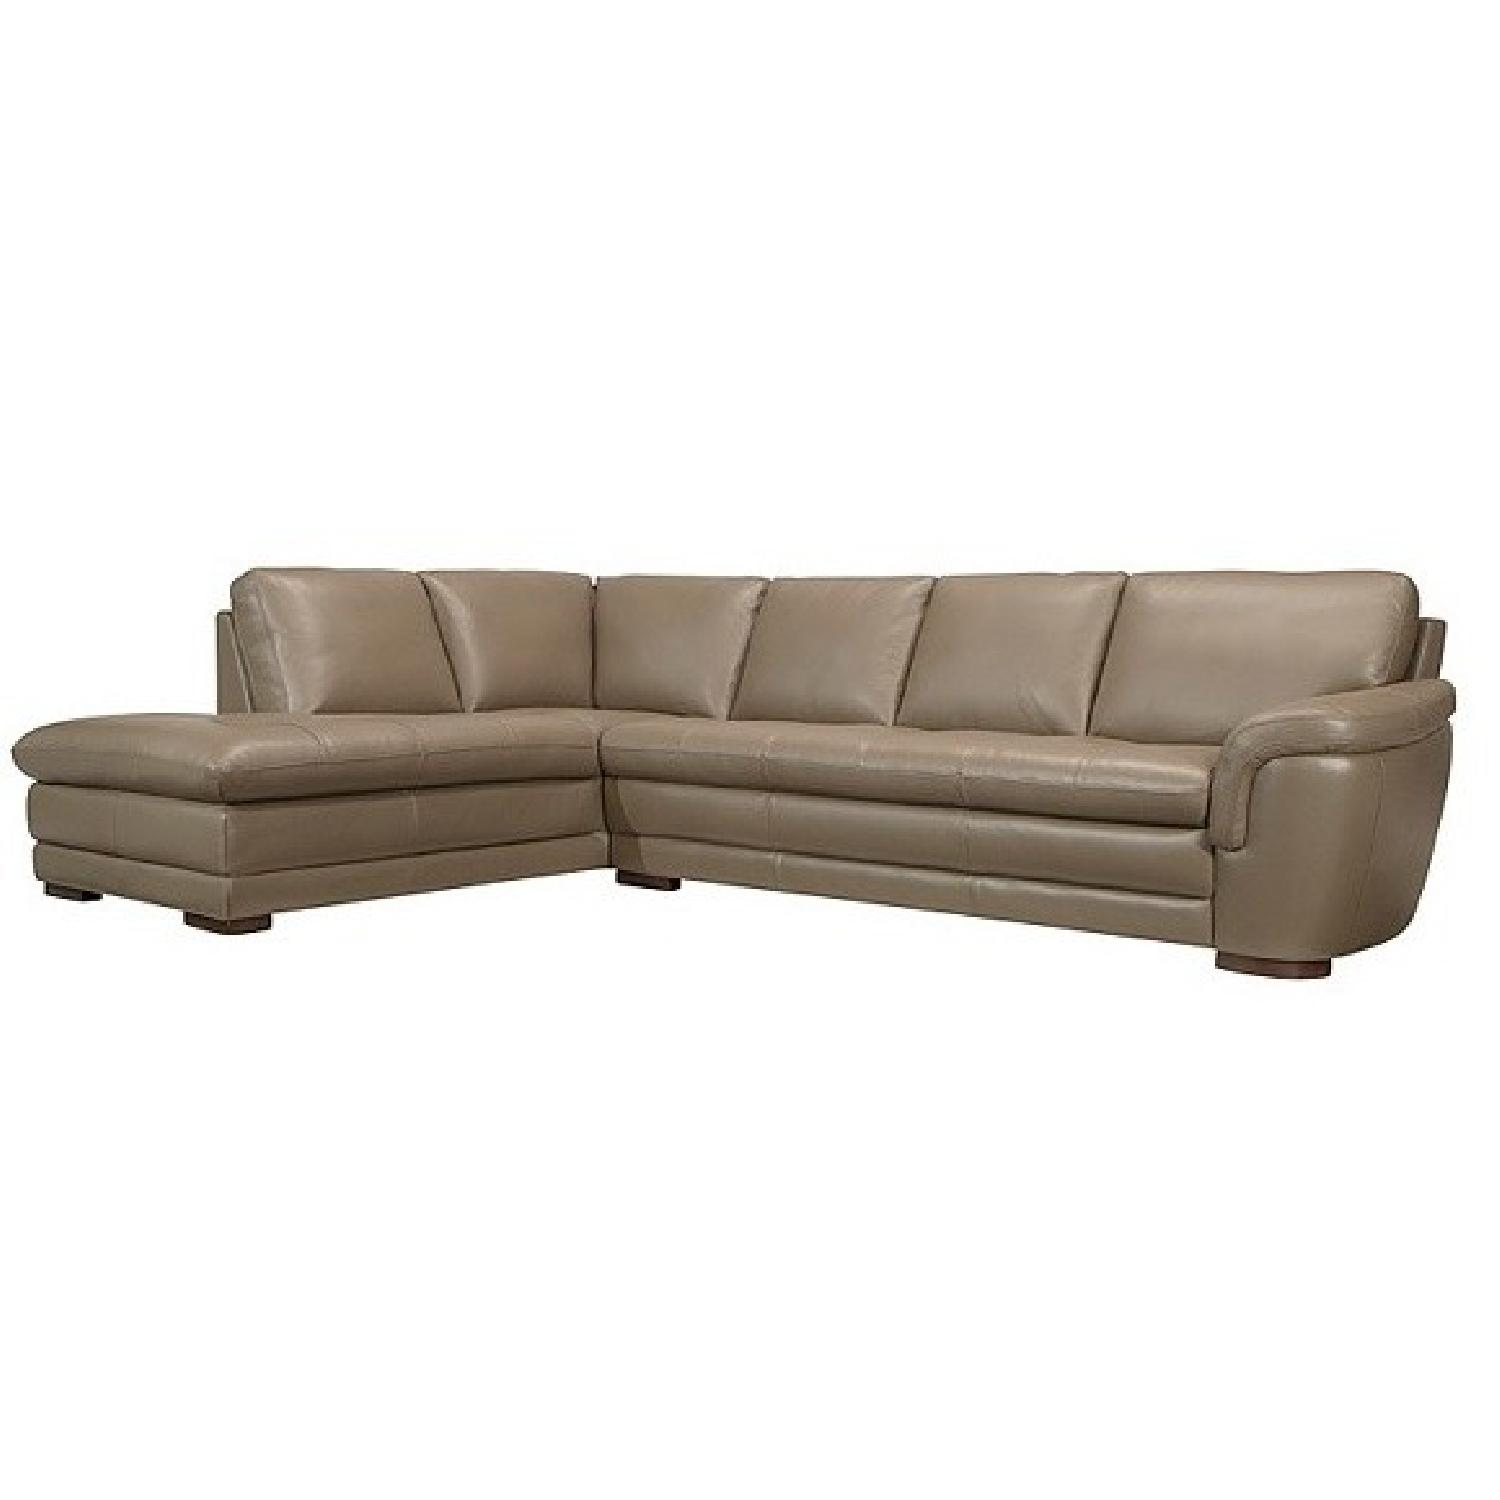 Raymour & Flanigan 2 Piece Leather Sectional Sofa & - AptDeco